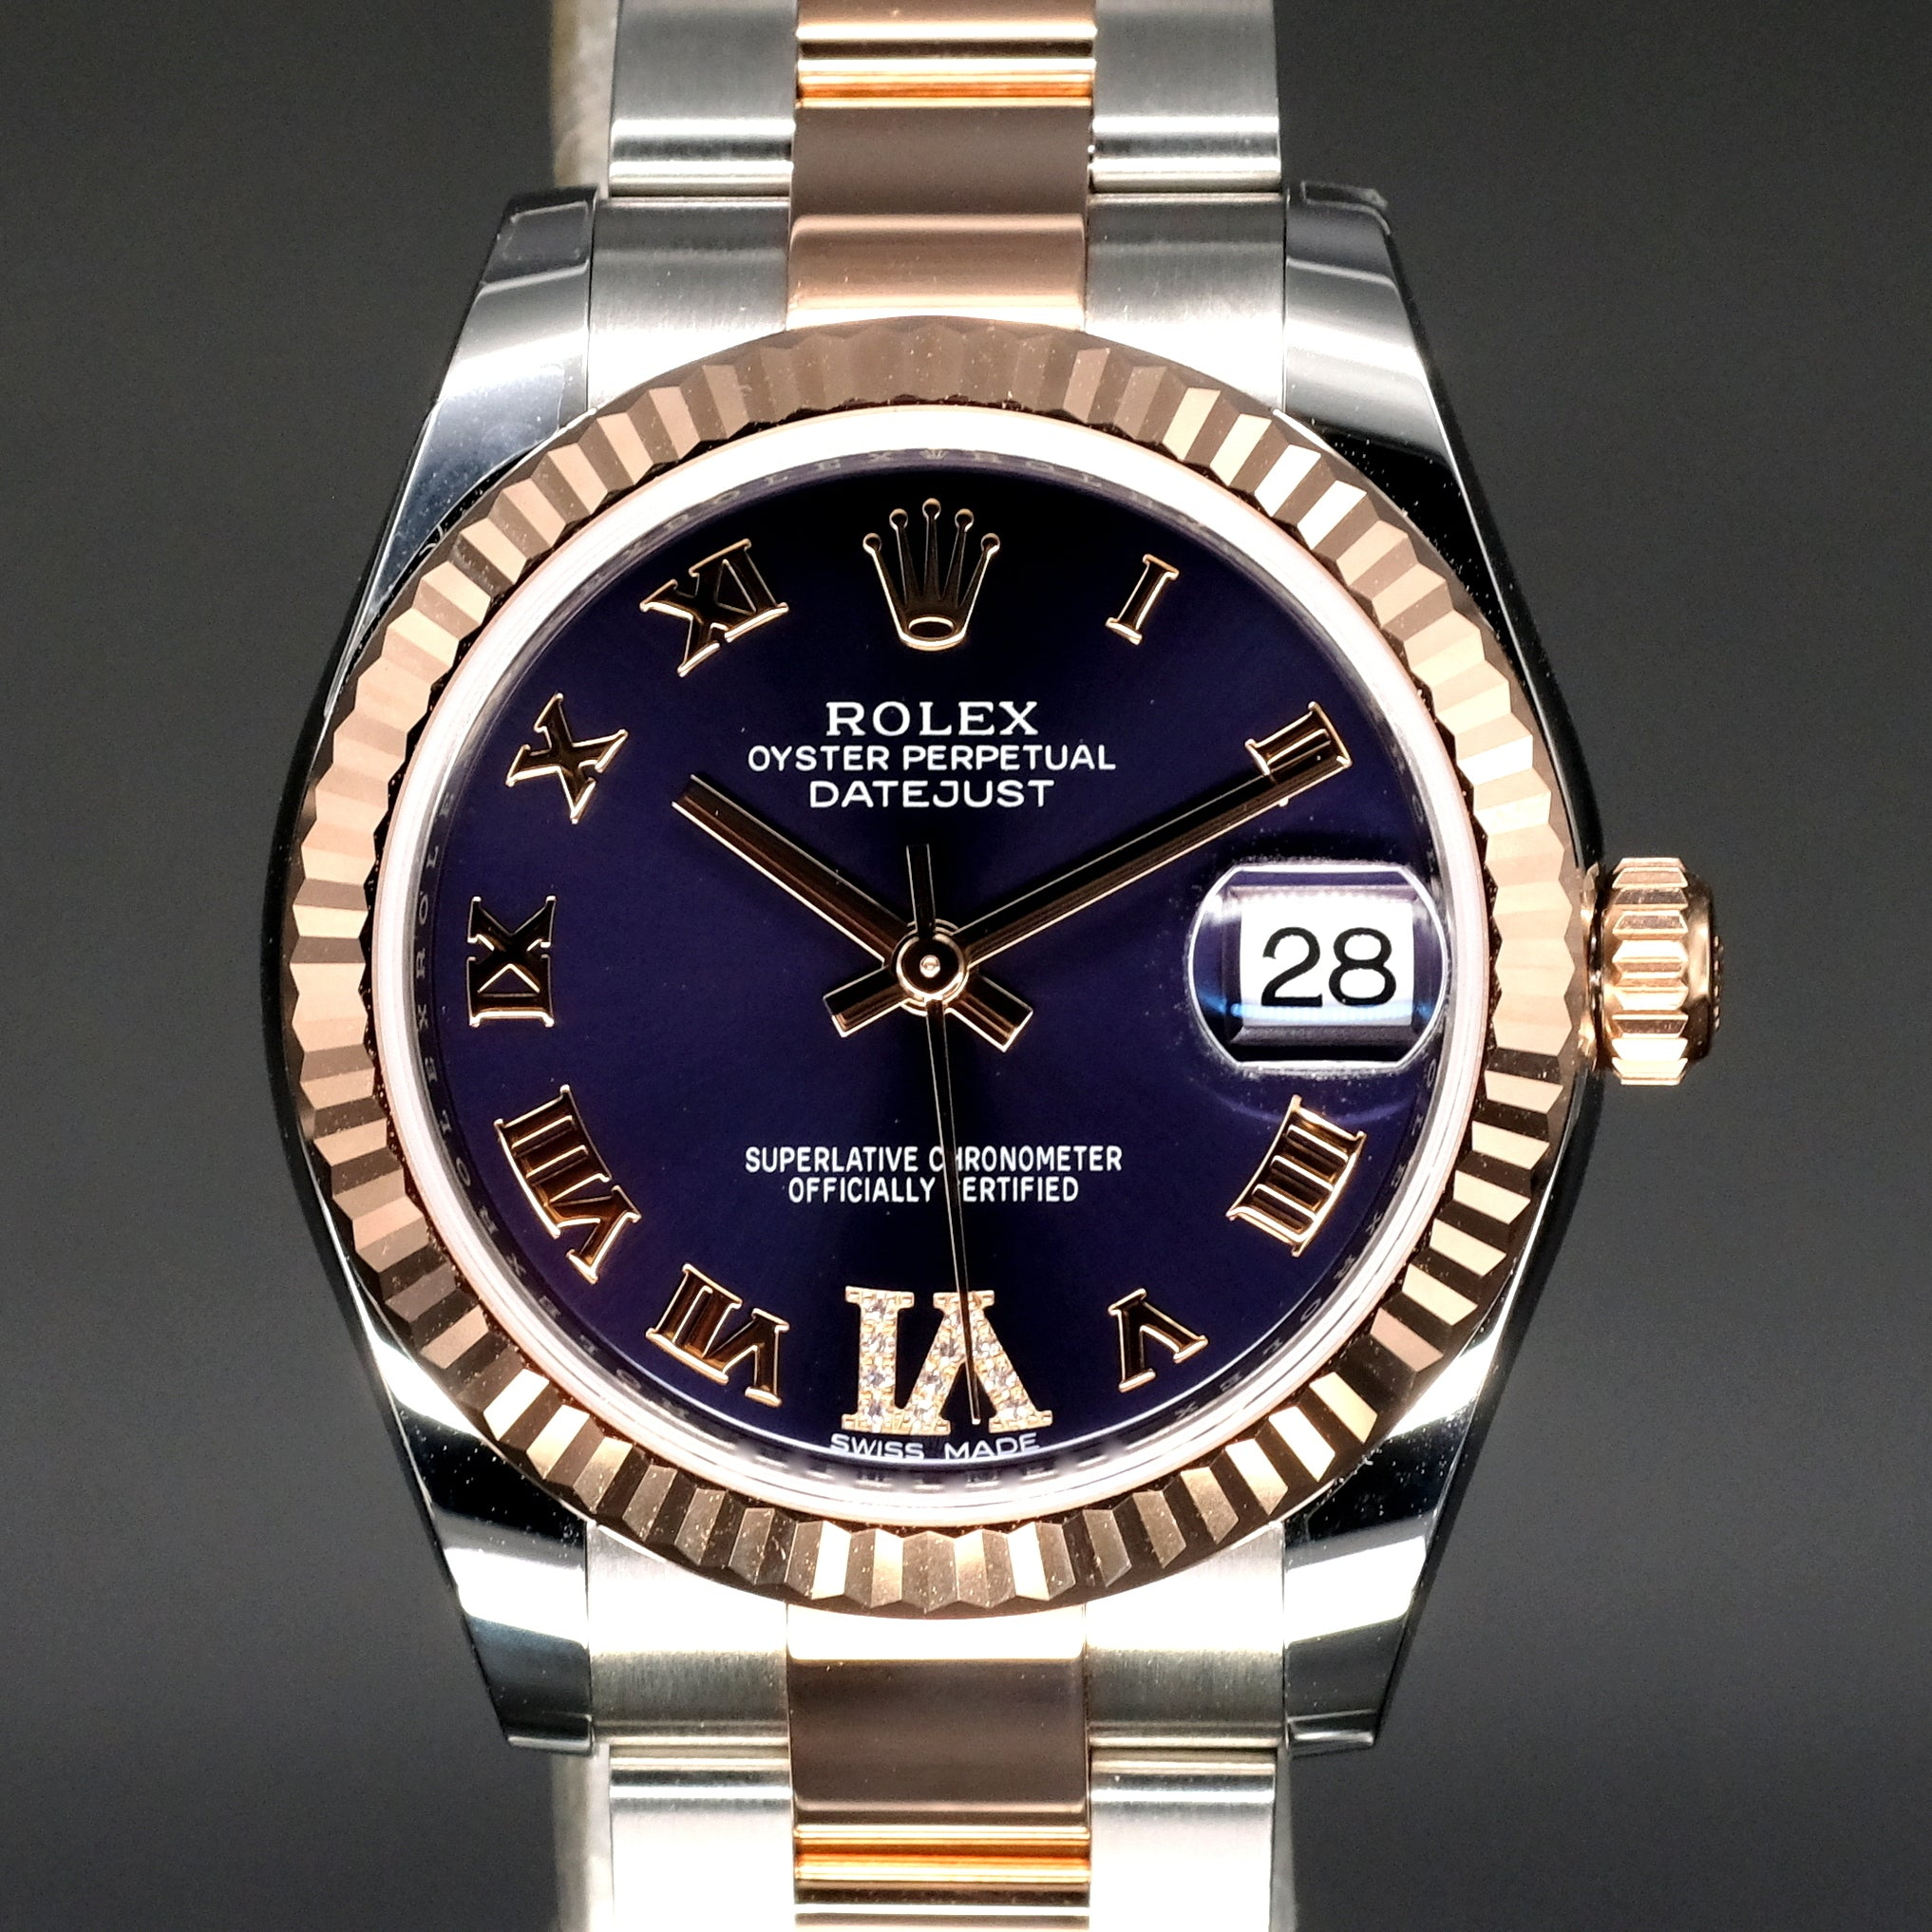 [Brand New Watch] Rolex Datejust 31mm 178271 Purple Dial with VI Diamonds (Oyster Bracelet)